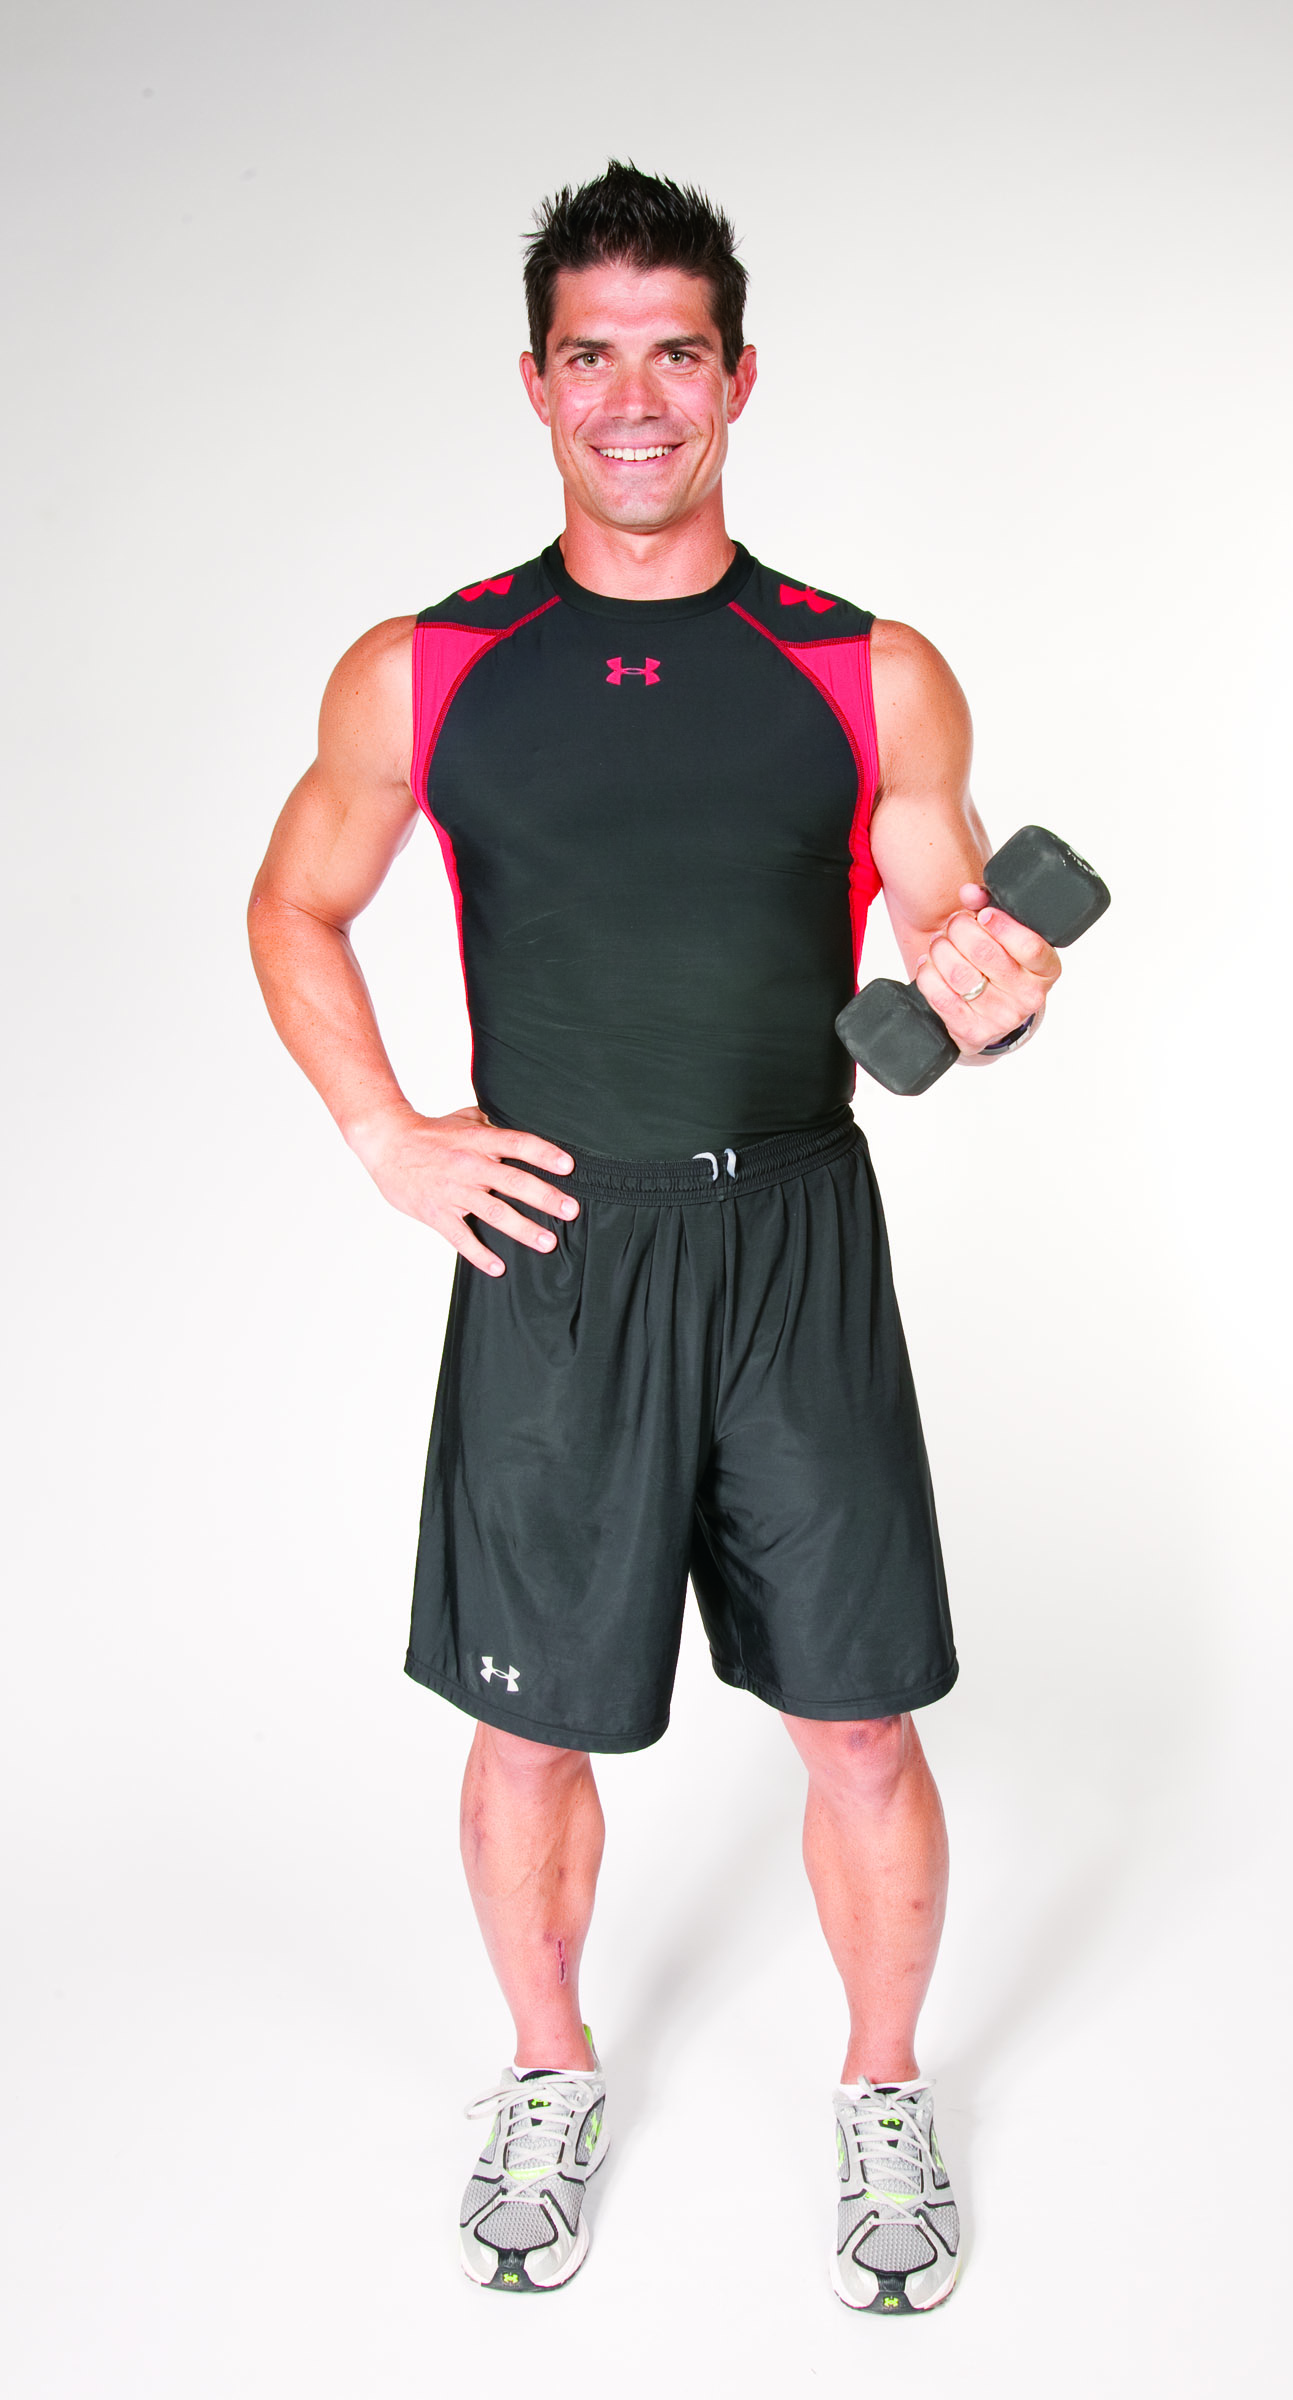 Lose That Baby Weight Program - 75 width=